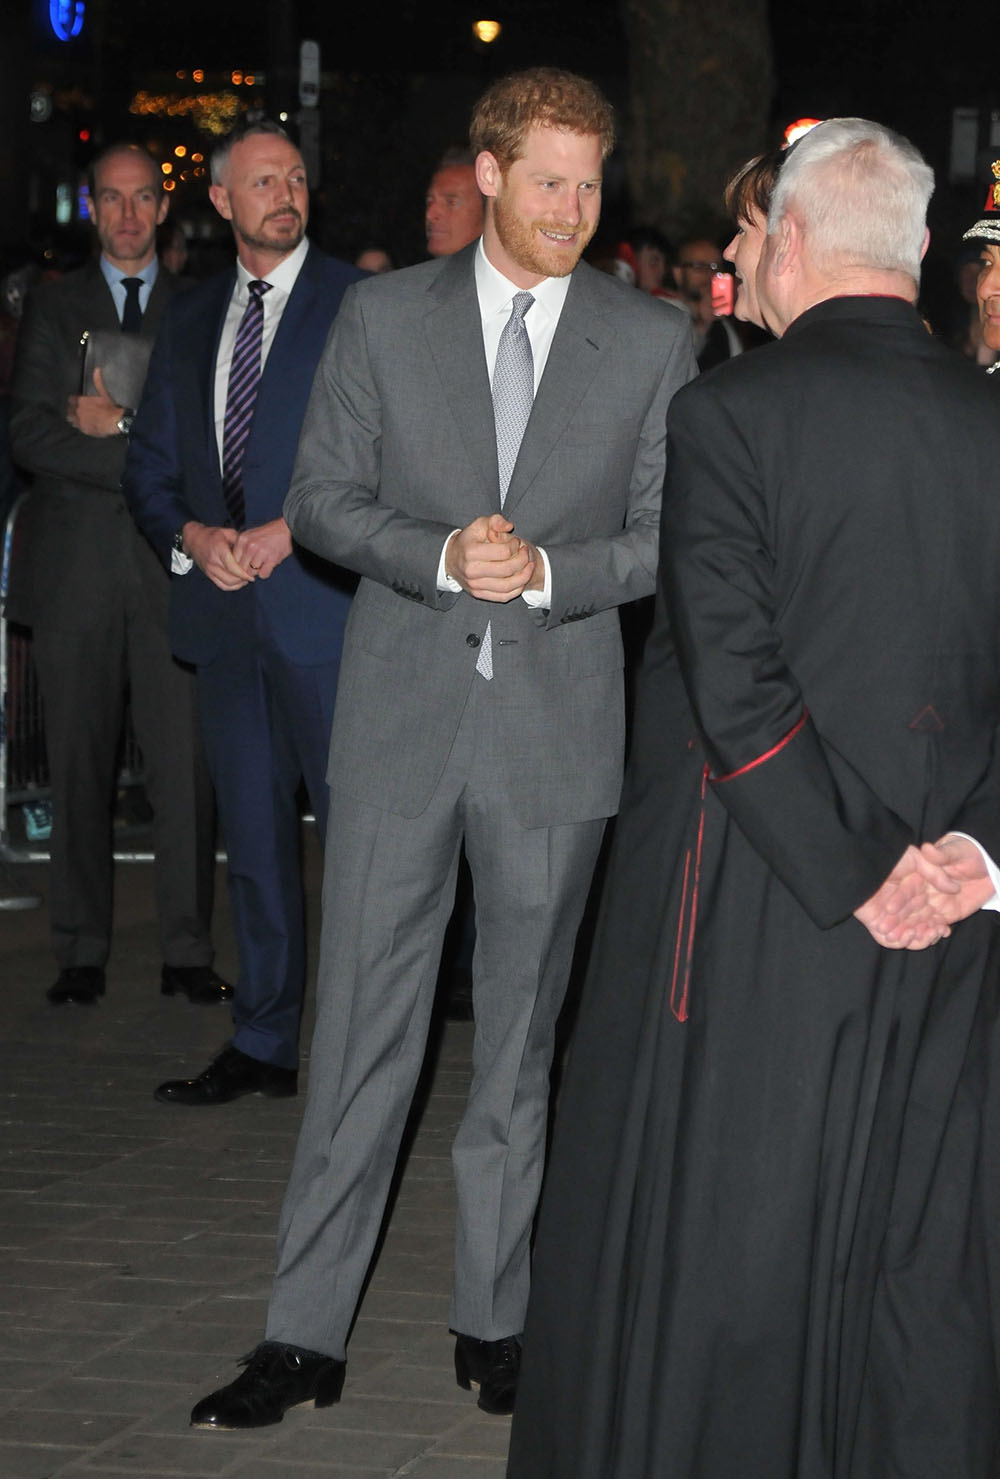 Prince Harry at the London Fire Brigade Carol Service